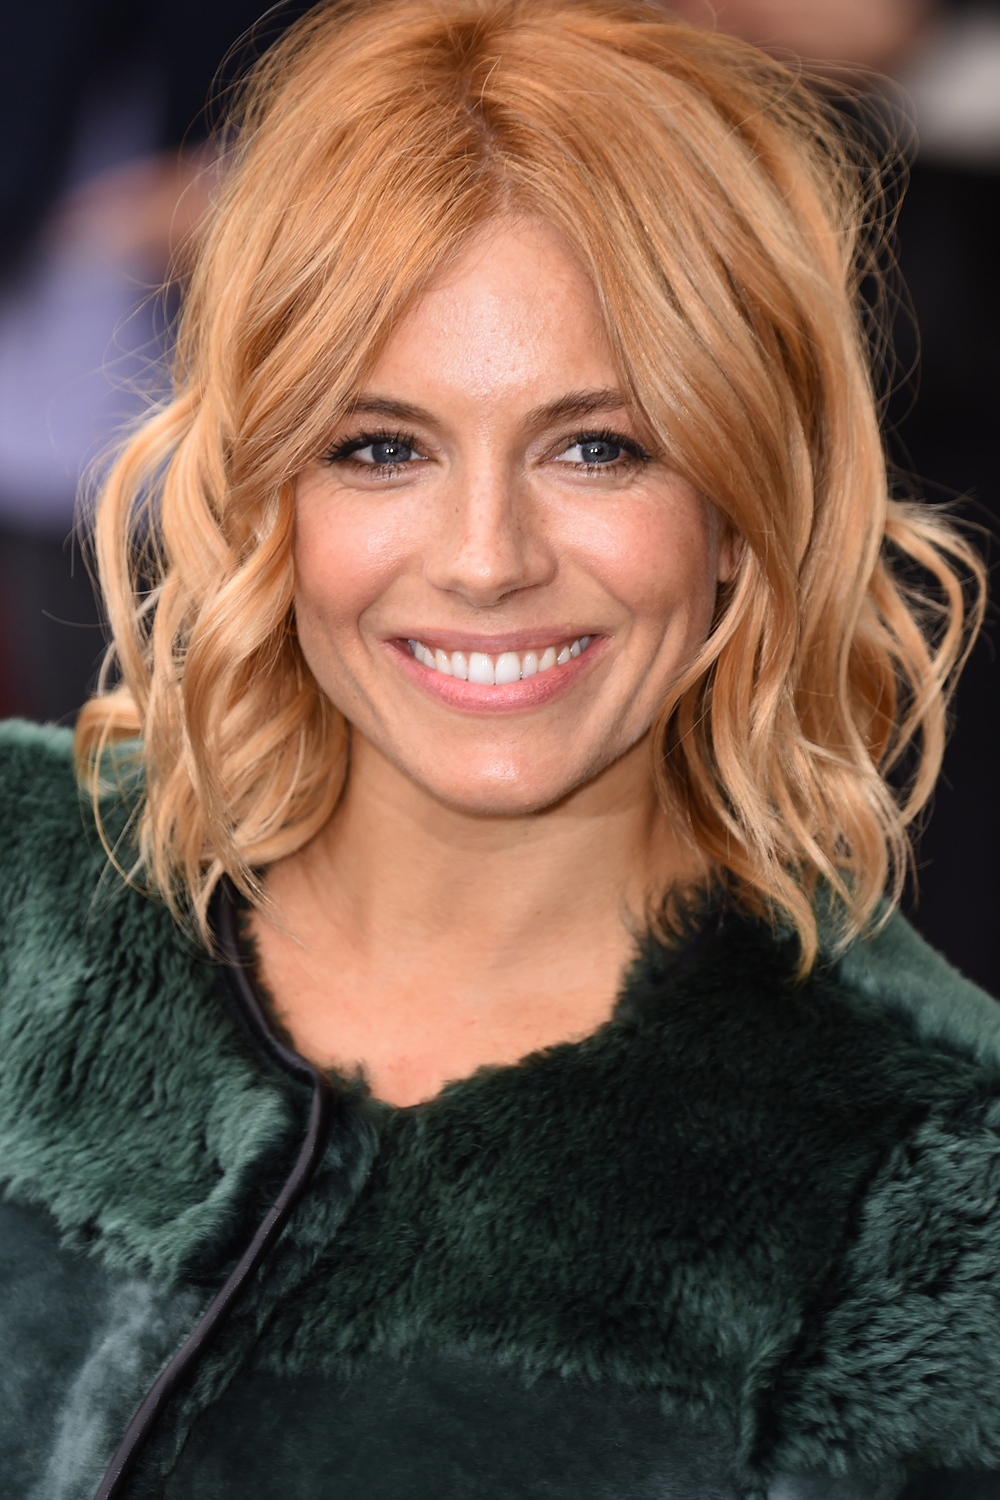 Structured Bob Hairstyles Bob Hairstyles The Best Celebrity Bobs To Inspire Your Hairdo